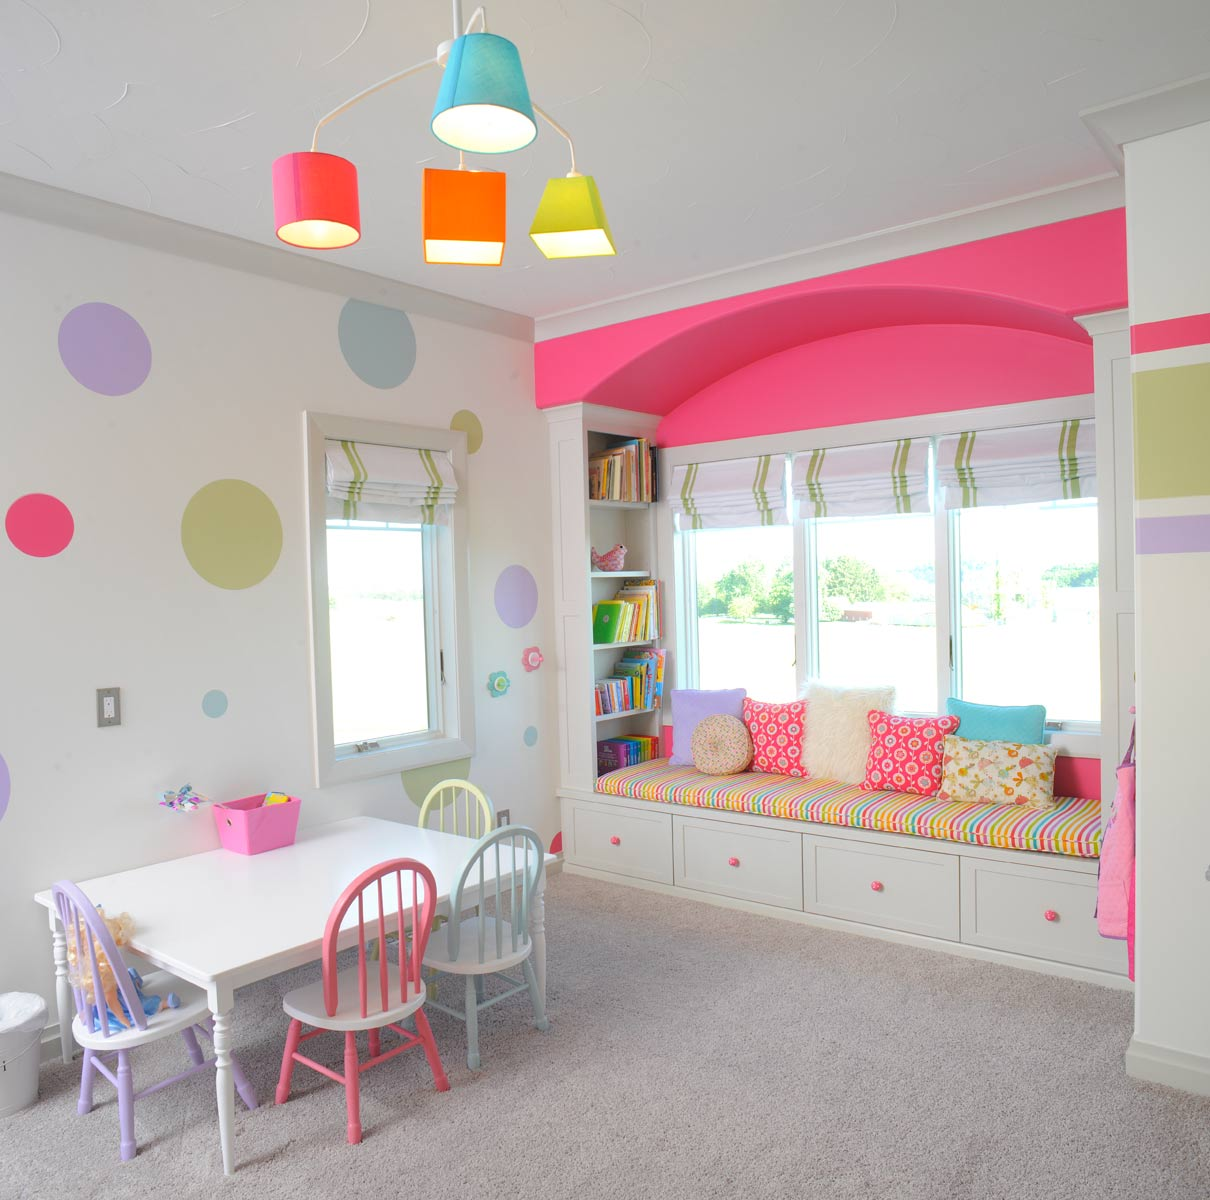 Playroom: Colorful Playroom